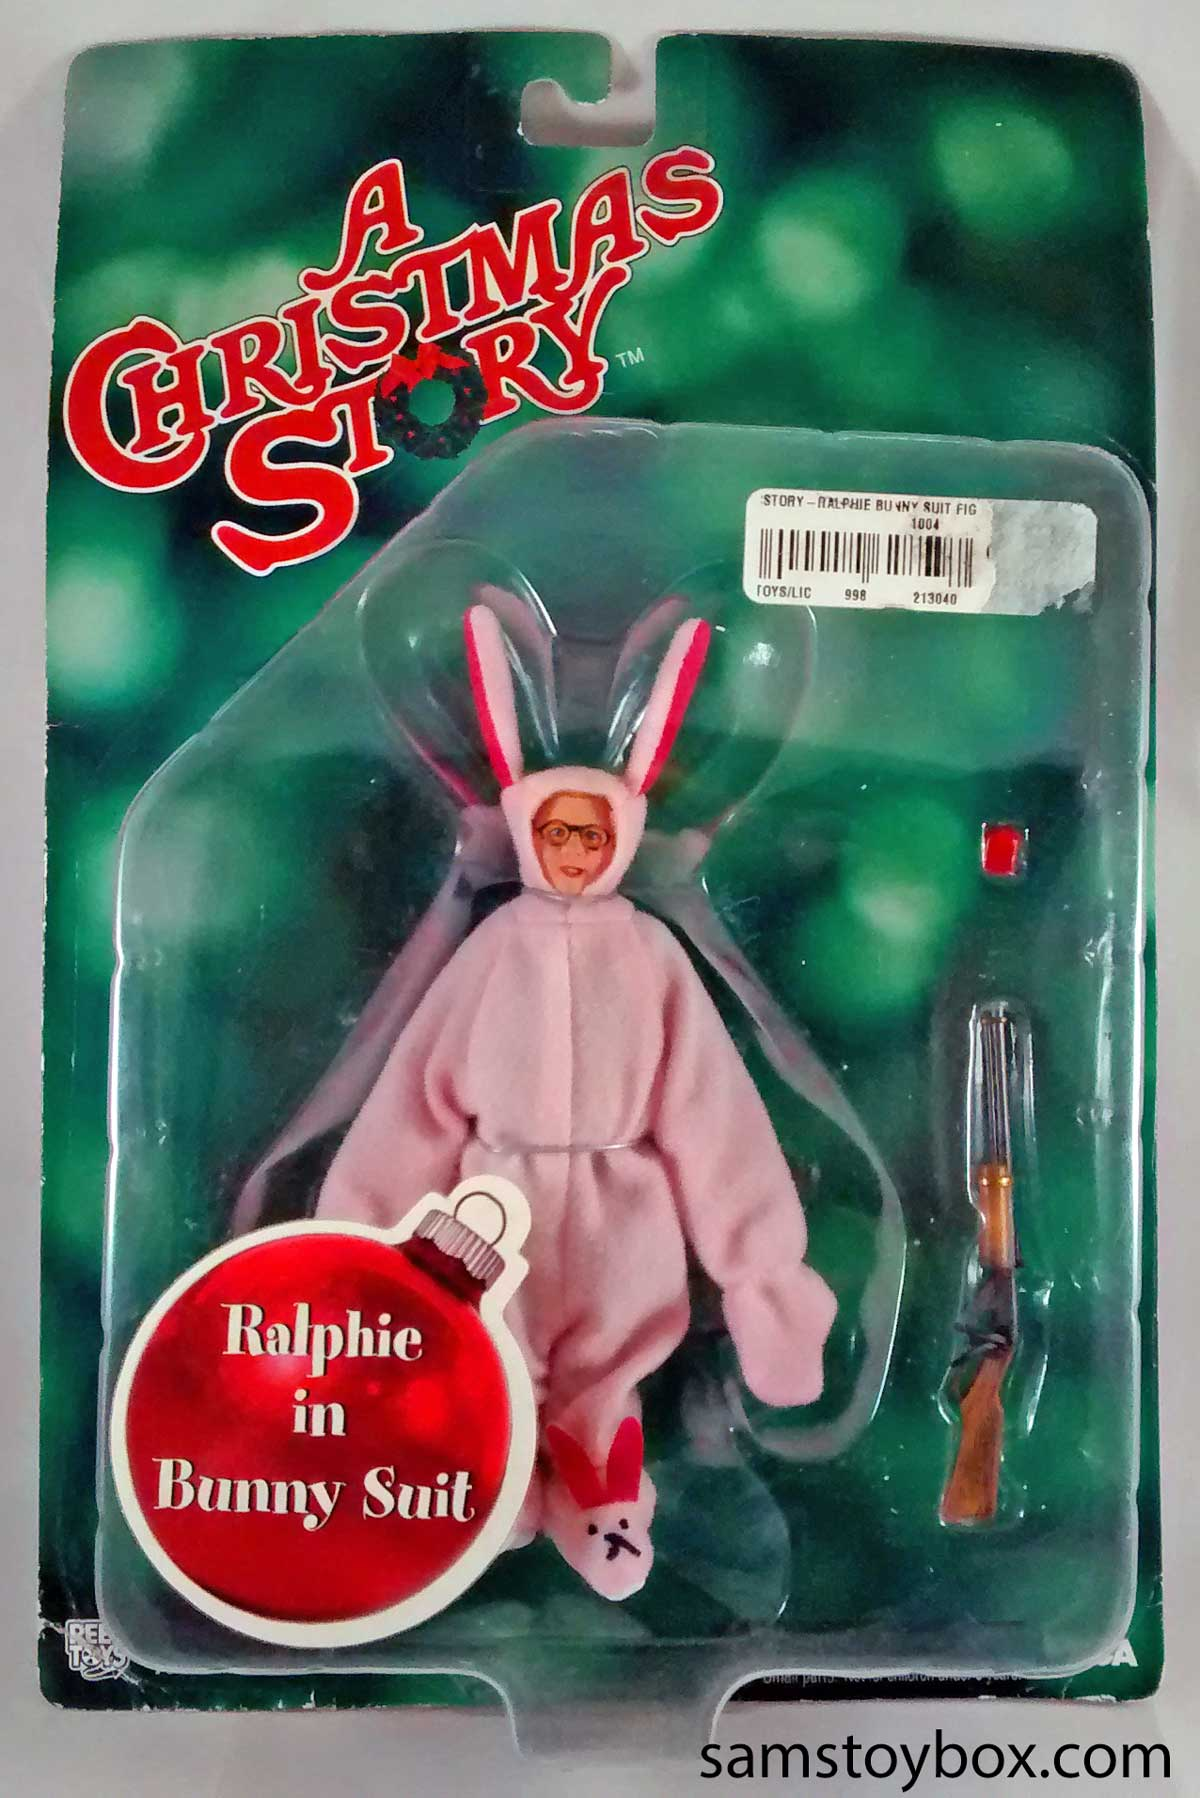 Ralphie in Bunny Suit Action Figure from A Christmas Story